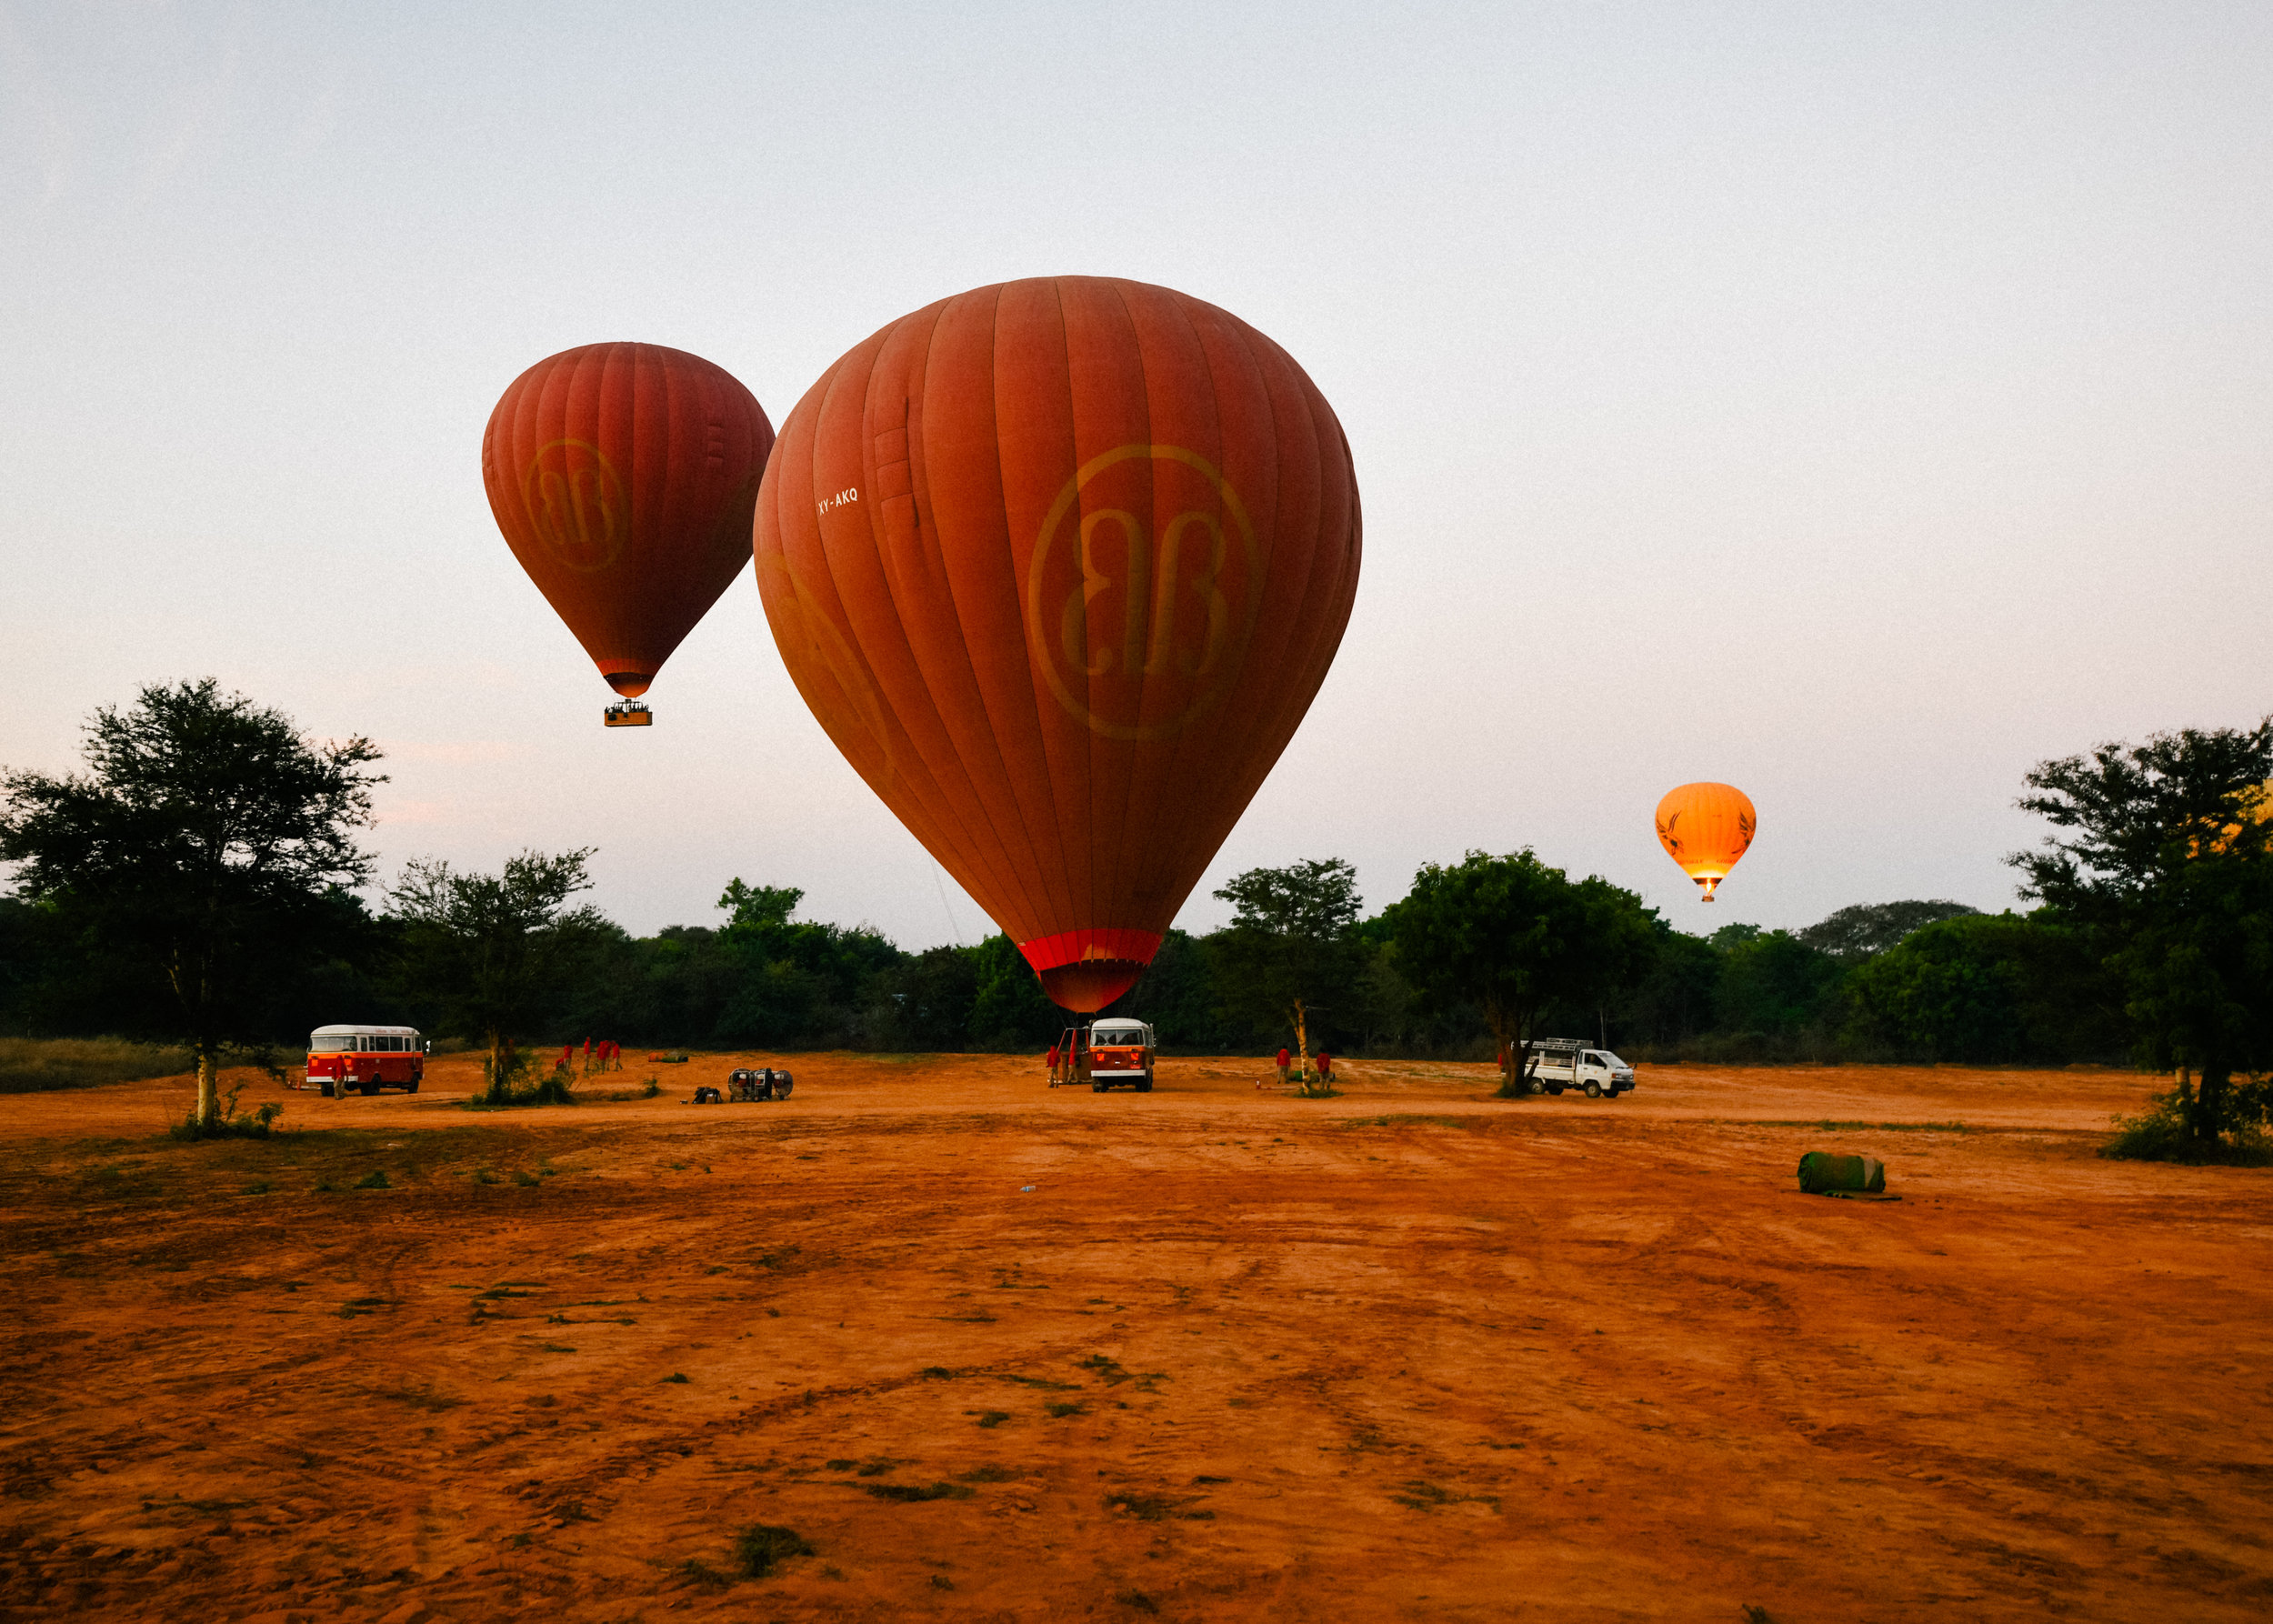 busses and balloons in Myanmar